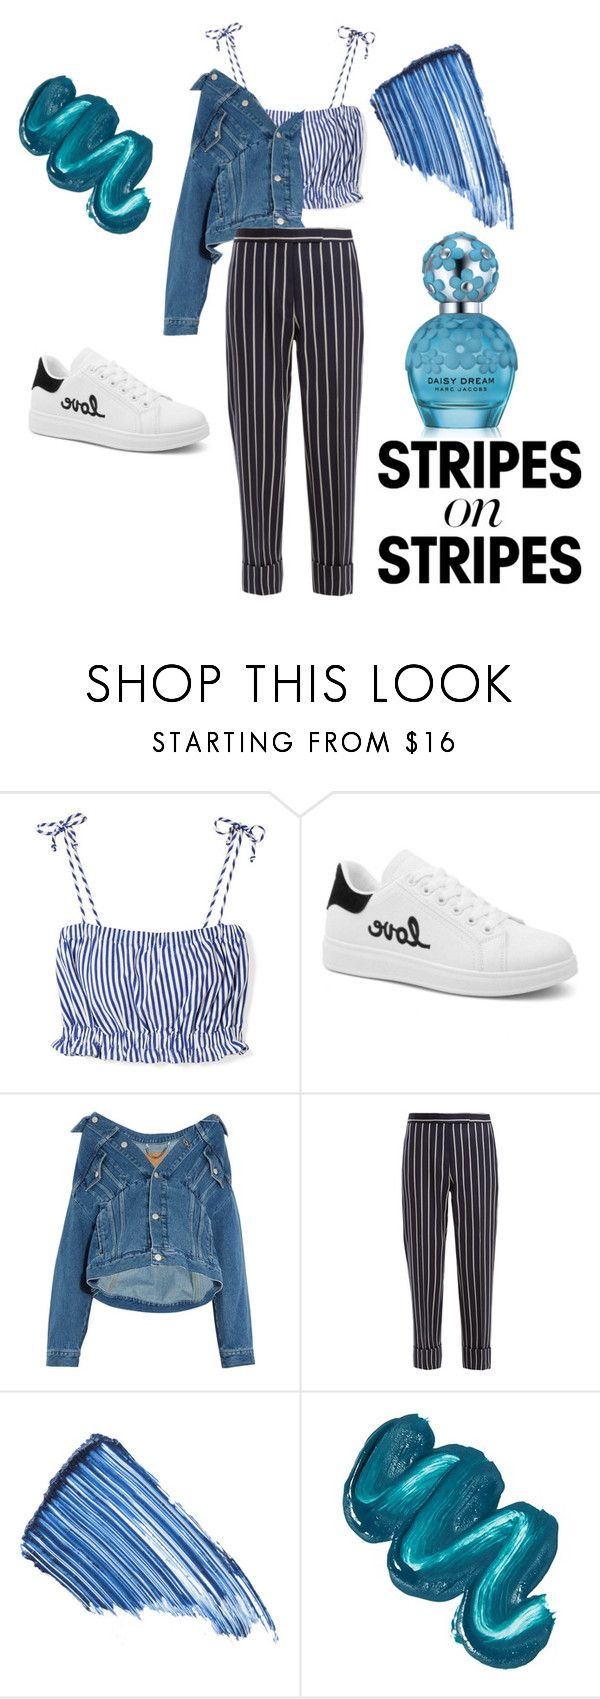 """4"" by irdinuhh ❤ liked on Polyvore featuring MDS Stripes, Balenciaga, Thom Browne, Sisley, Mermaid Salon, Marc Jacobs, stripesonstripes and PatternChallenge"